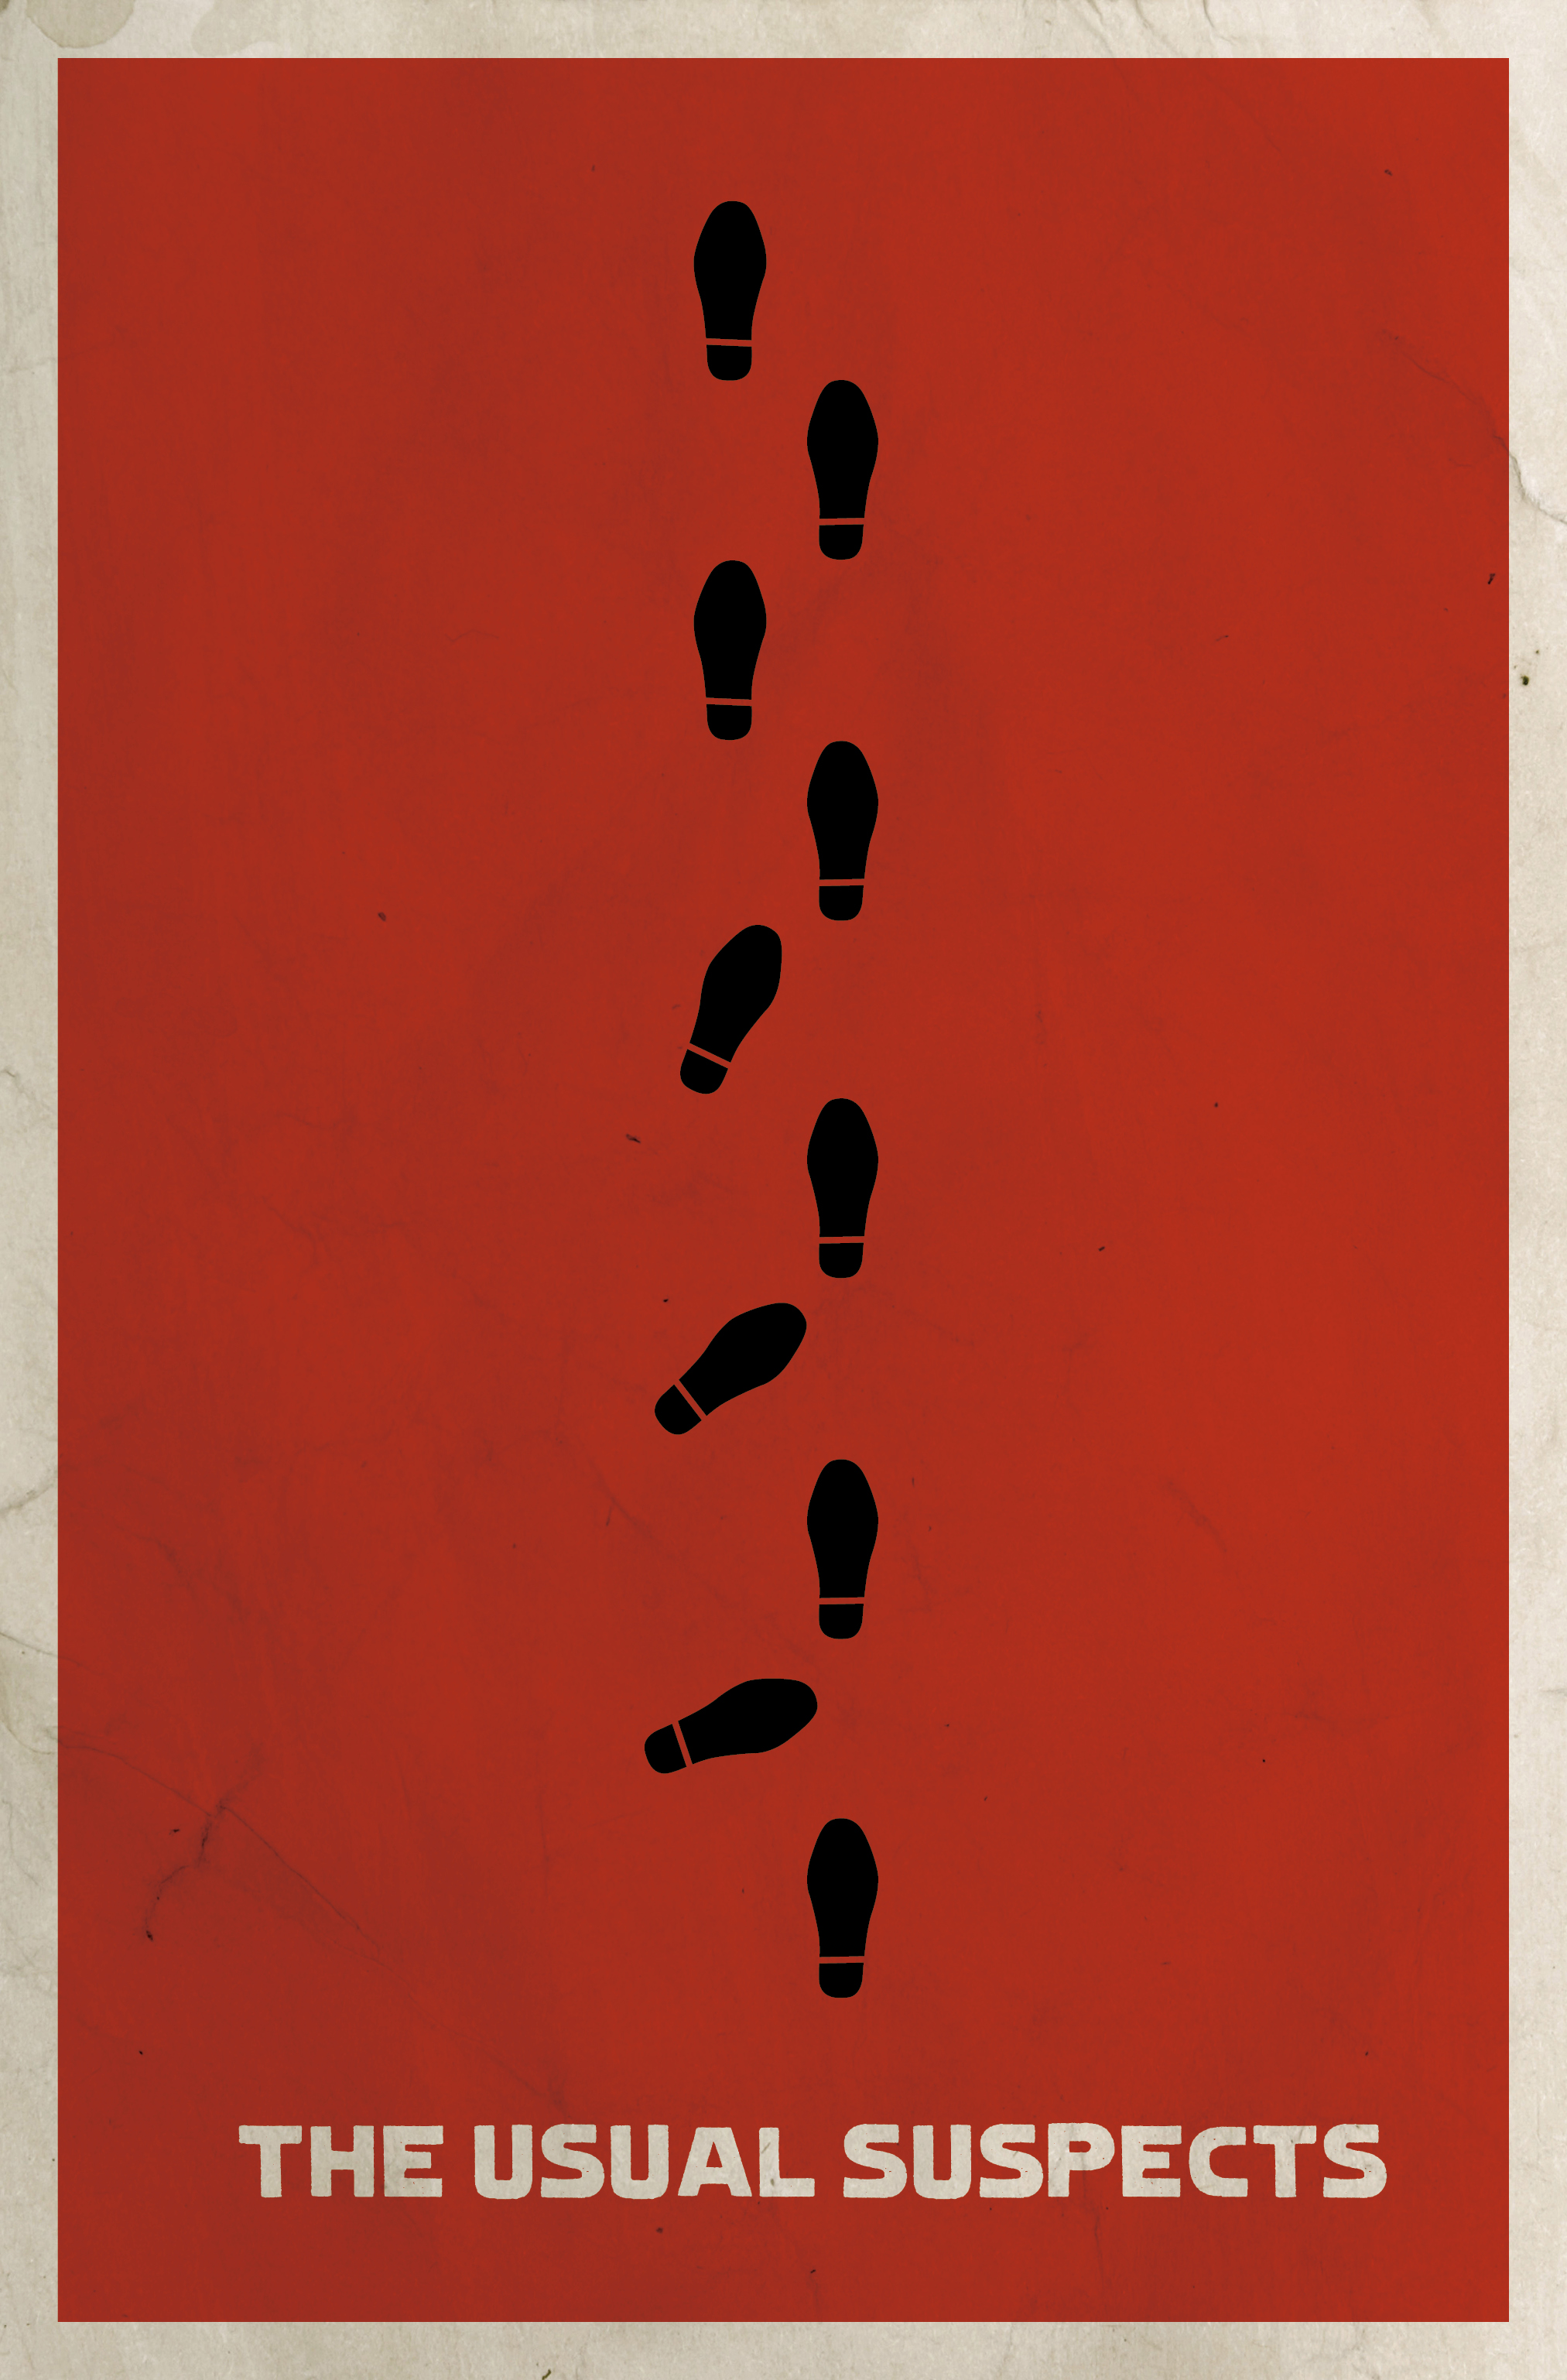 The Usual Suspects Movie and Minimalist Posters | Final ...